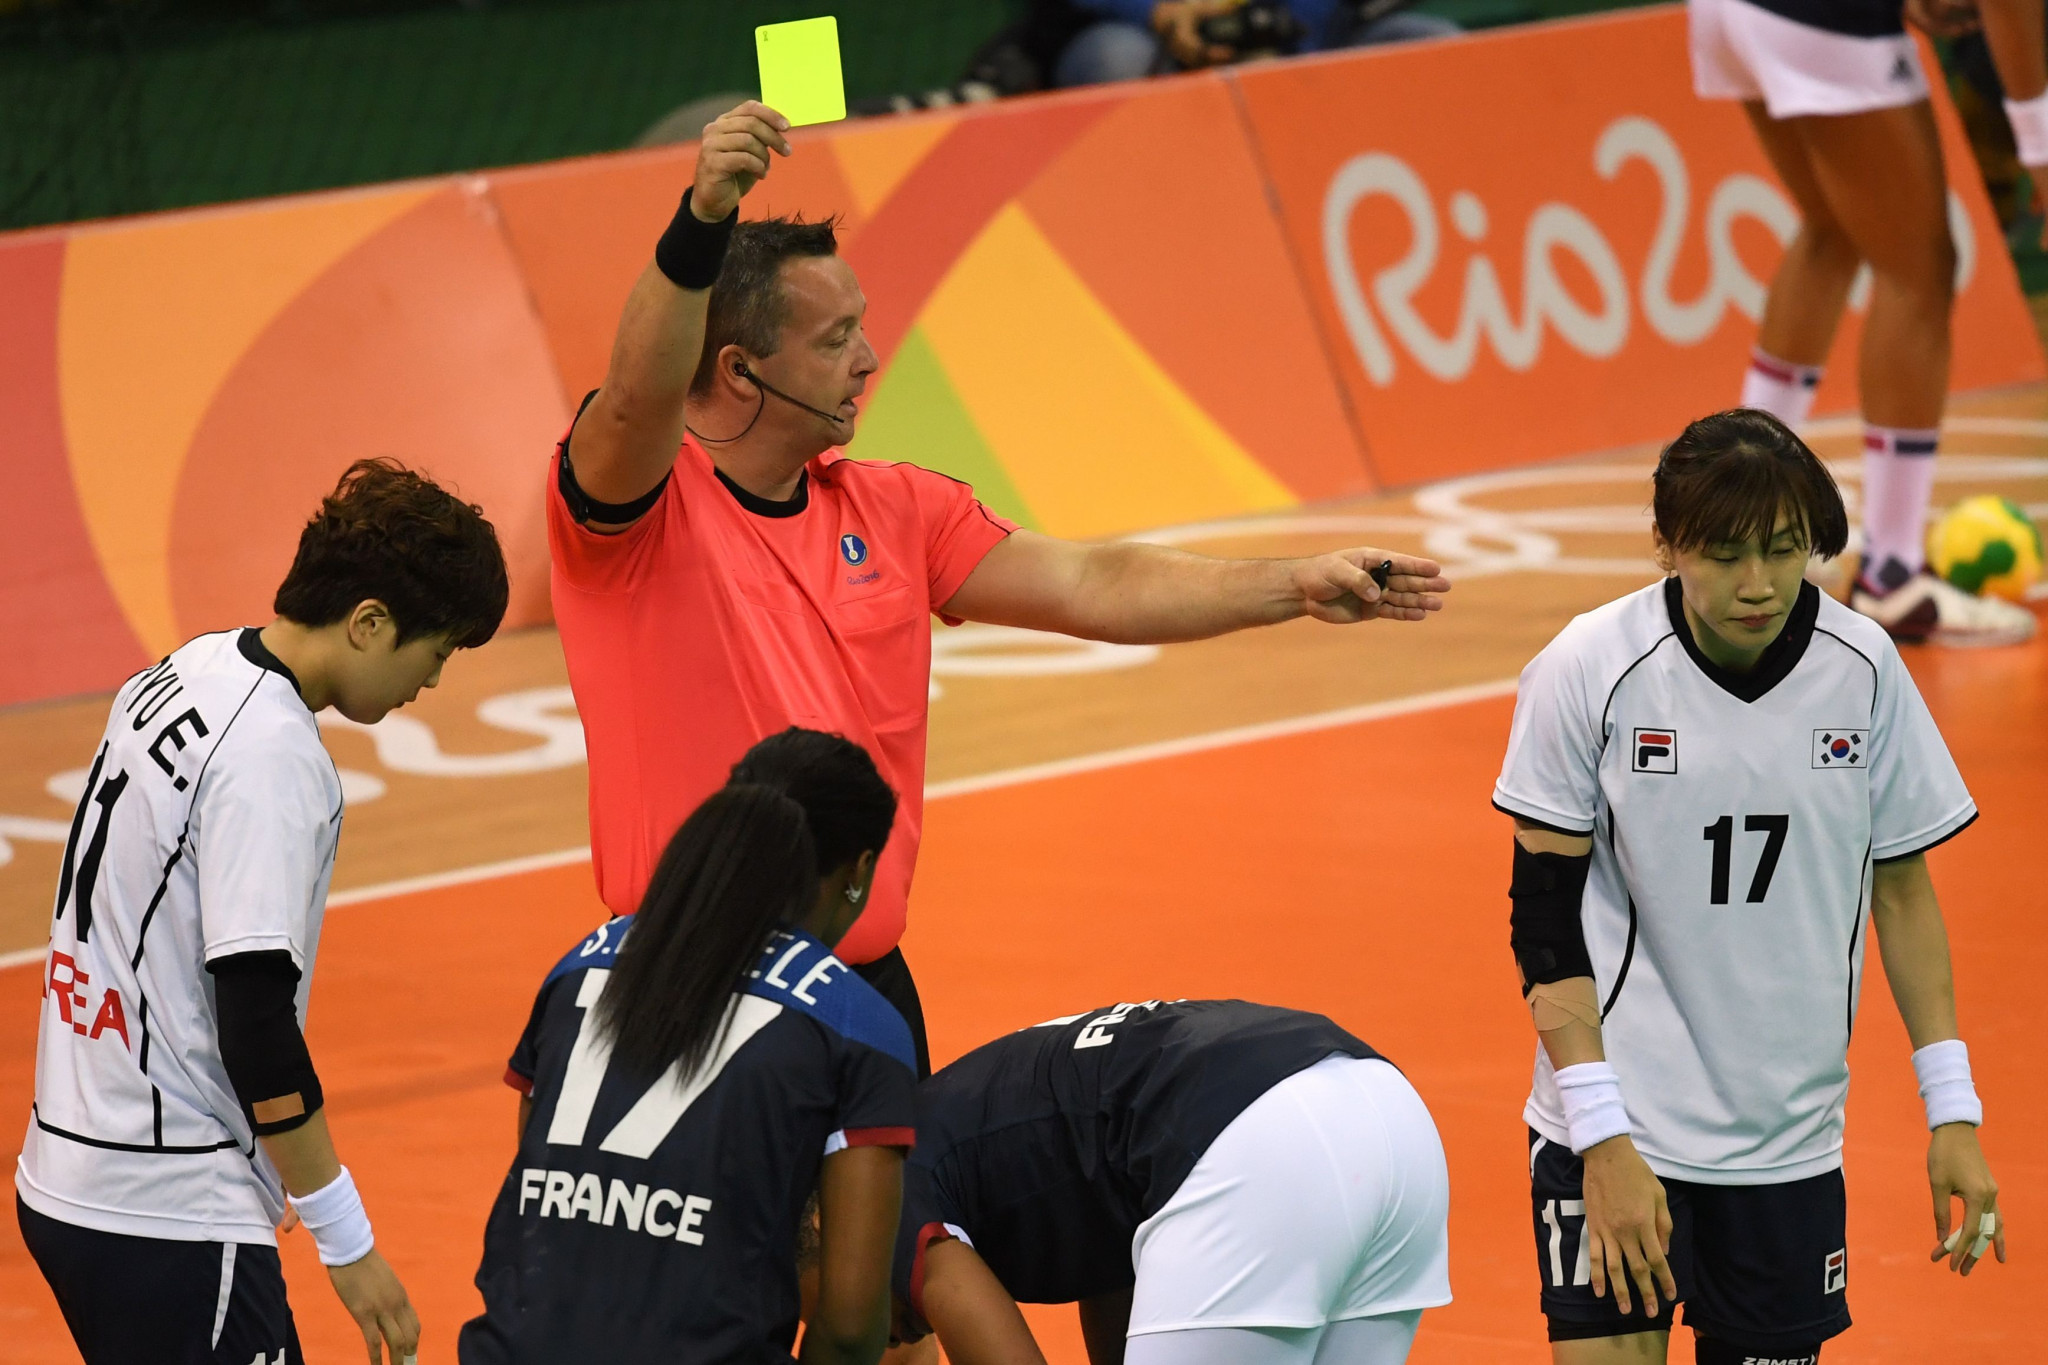 The USA Team Handball is aiming to improve the standing of refereeing ahead of Los Angeles 2028 ©Getty Images